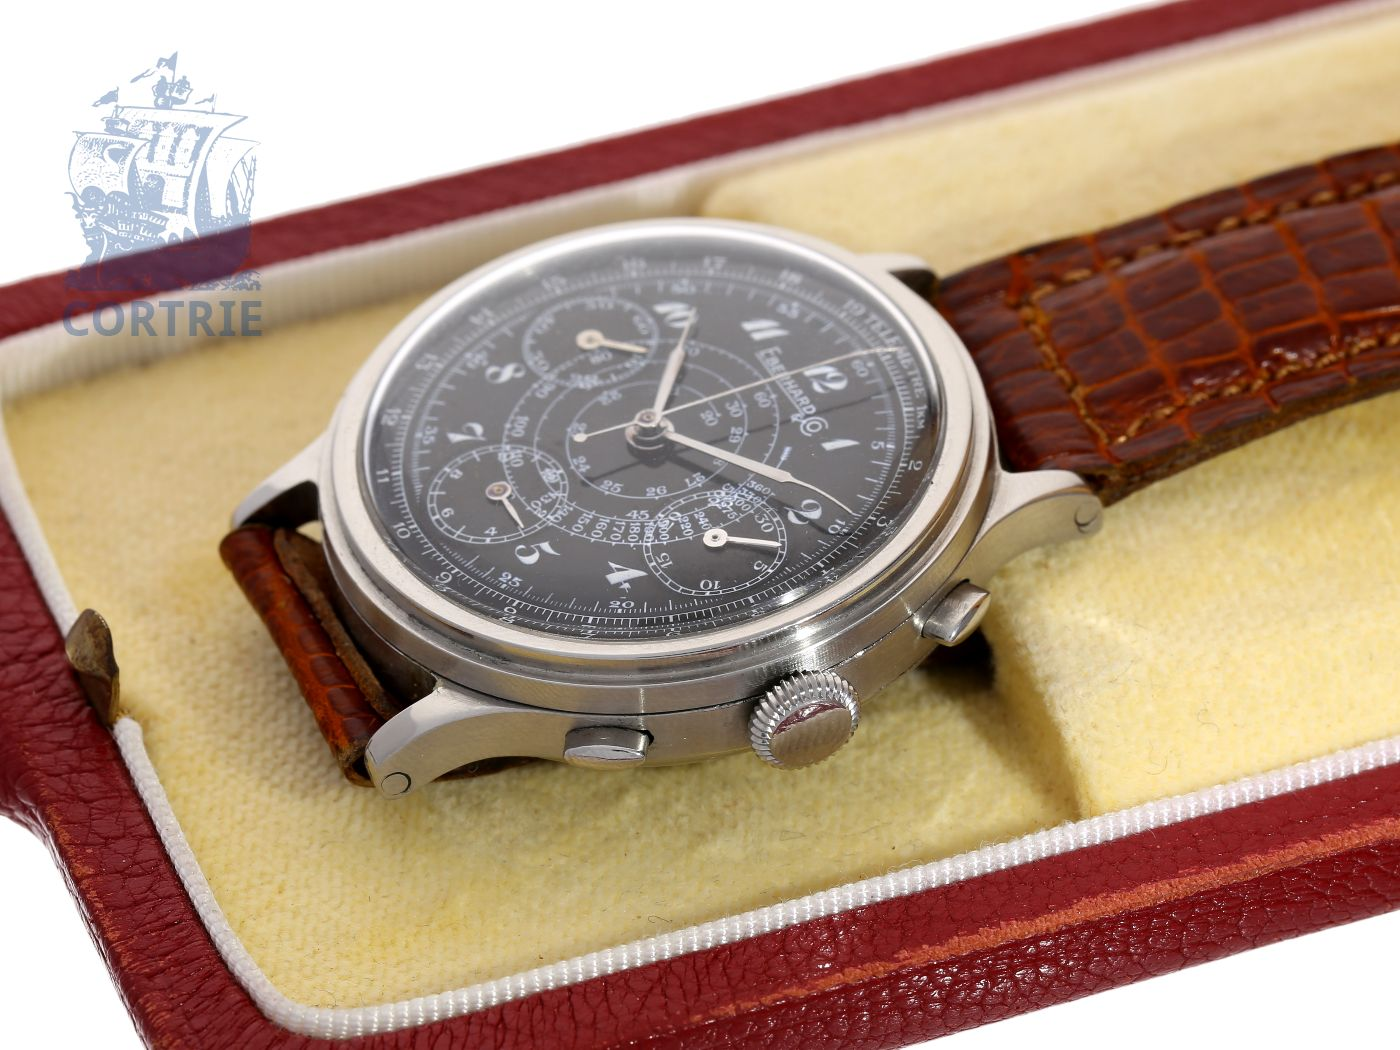 Wristwatch: extremely rare and big Eberhard steel telemeter chronograph with black enamel dial, from the 40s-